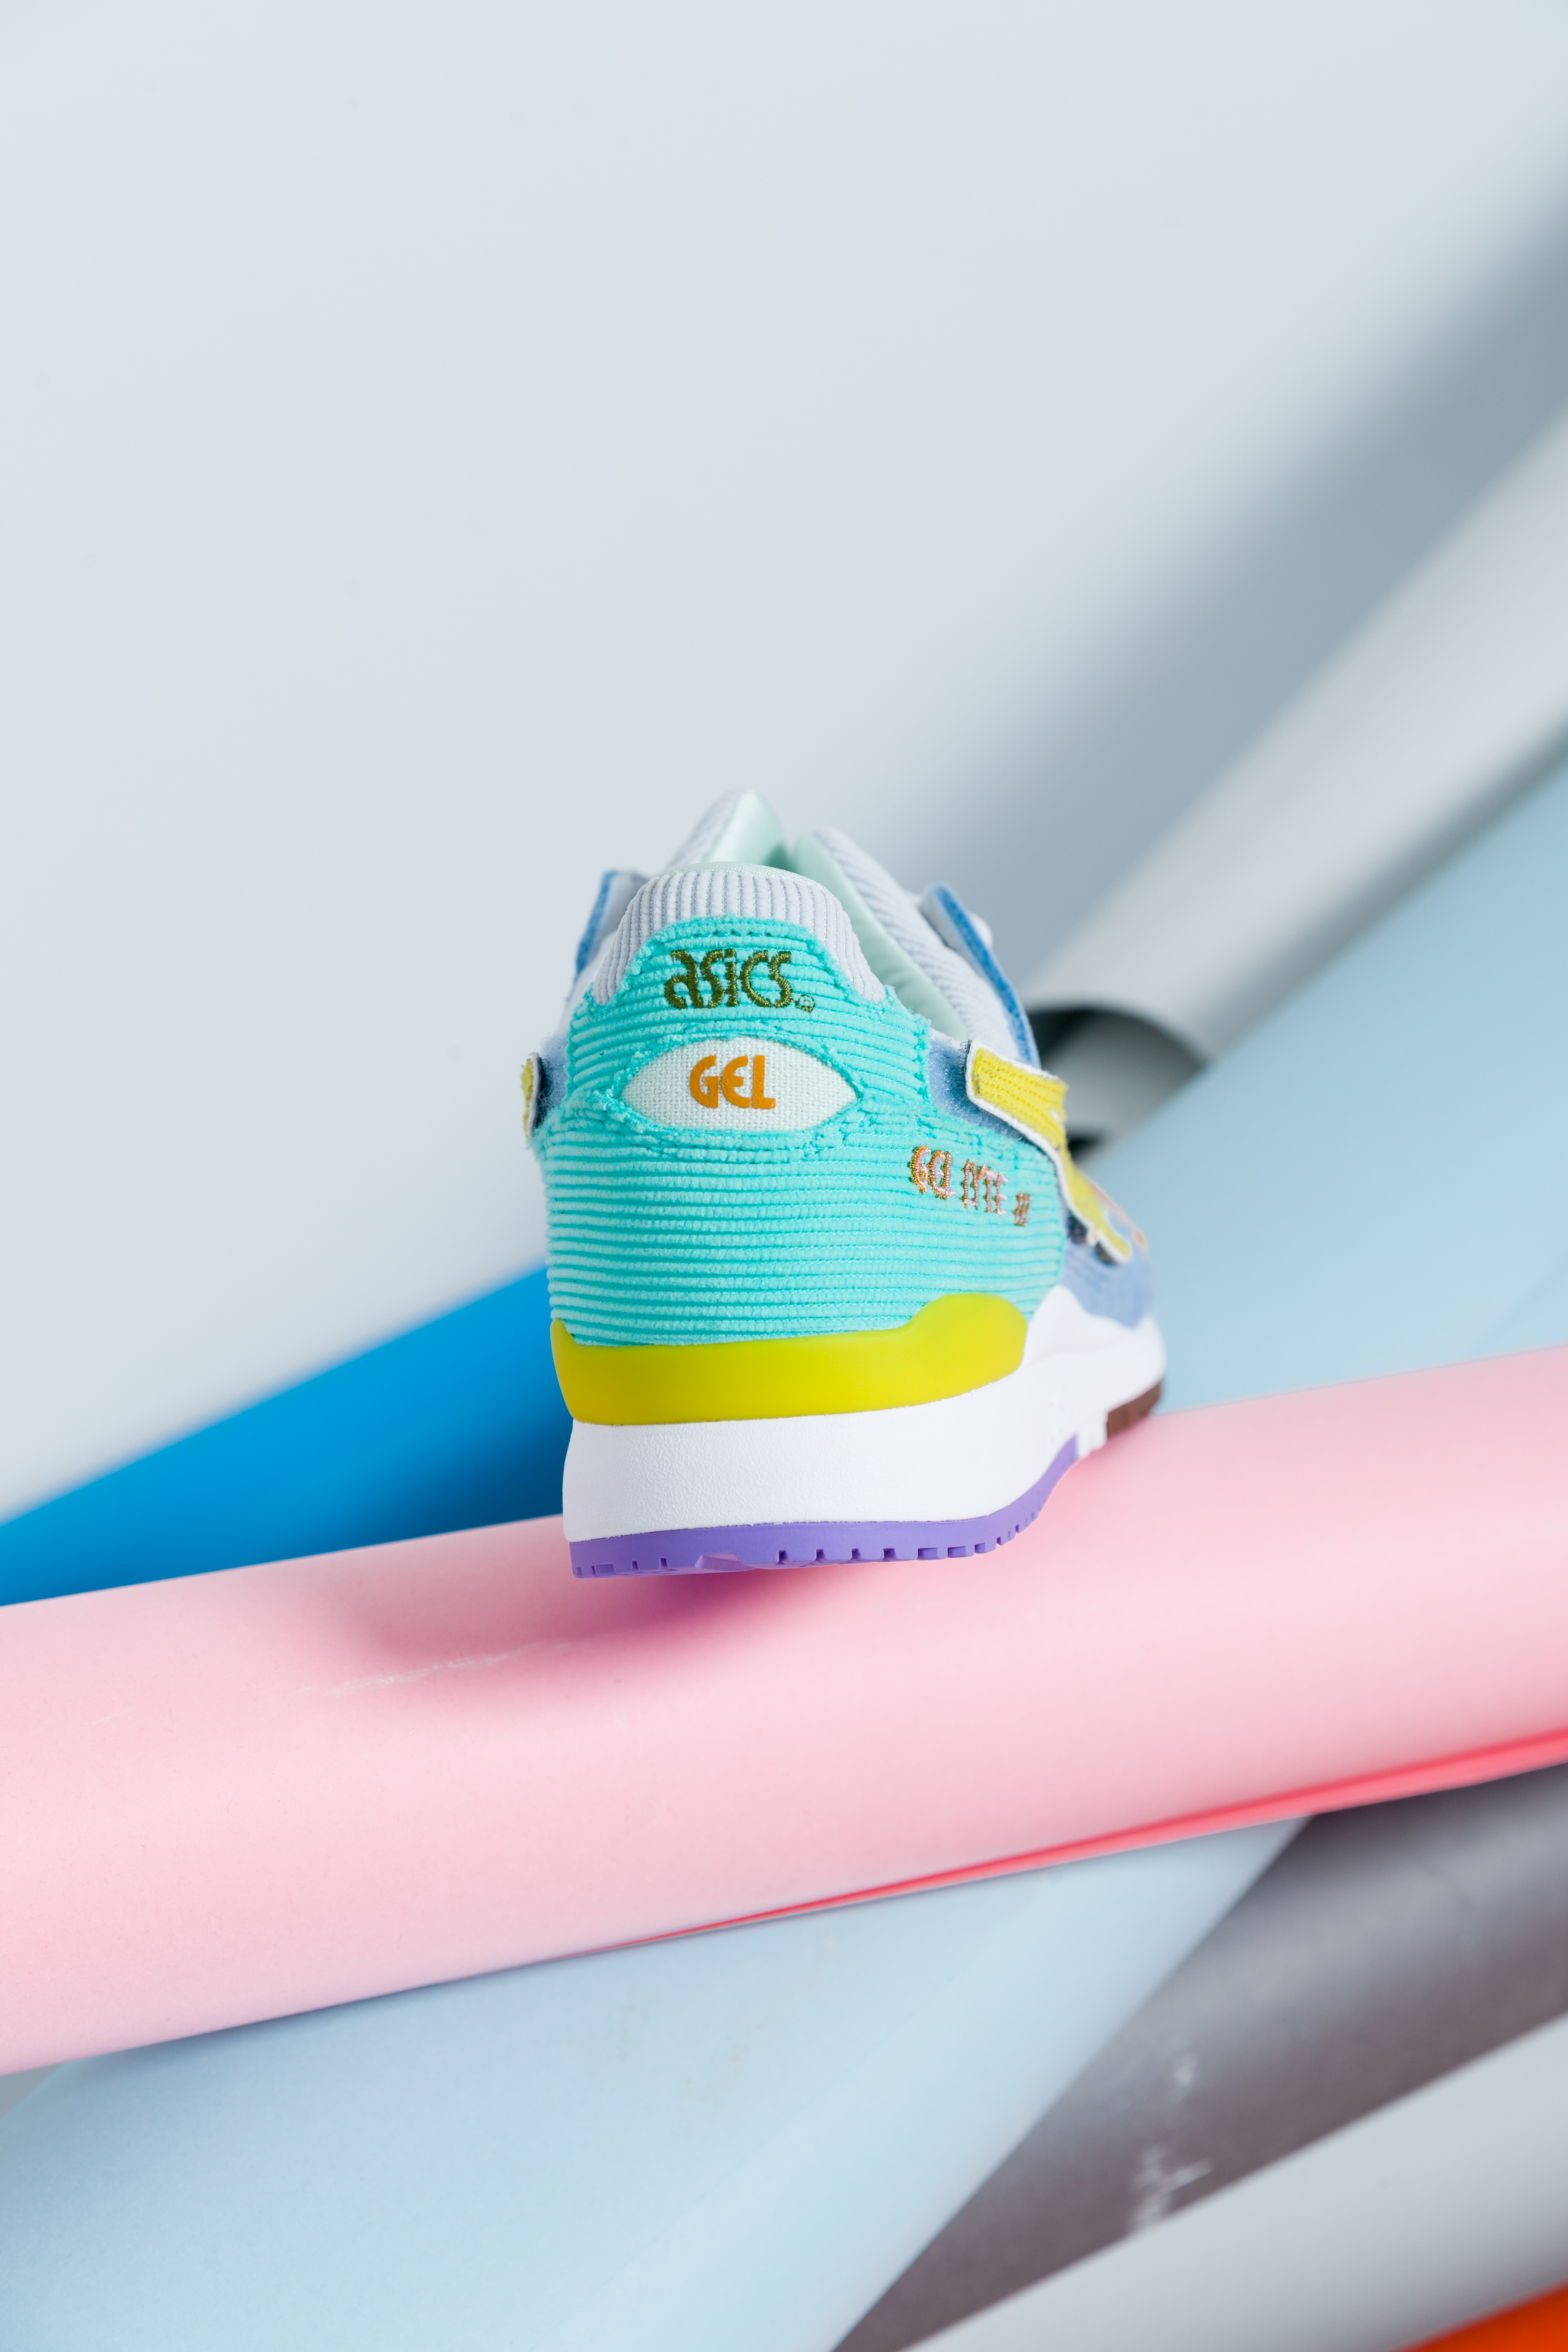 Launches - Asics X Atmos X Sean Wotherspoon Gel-Lyte III